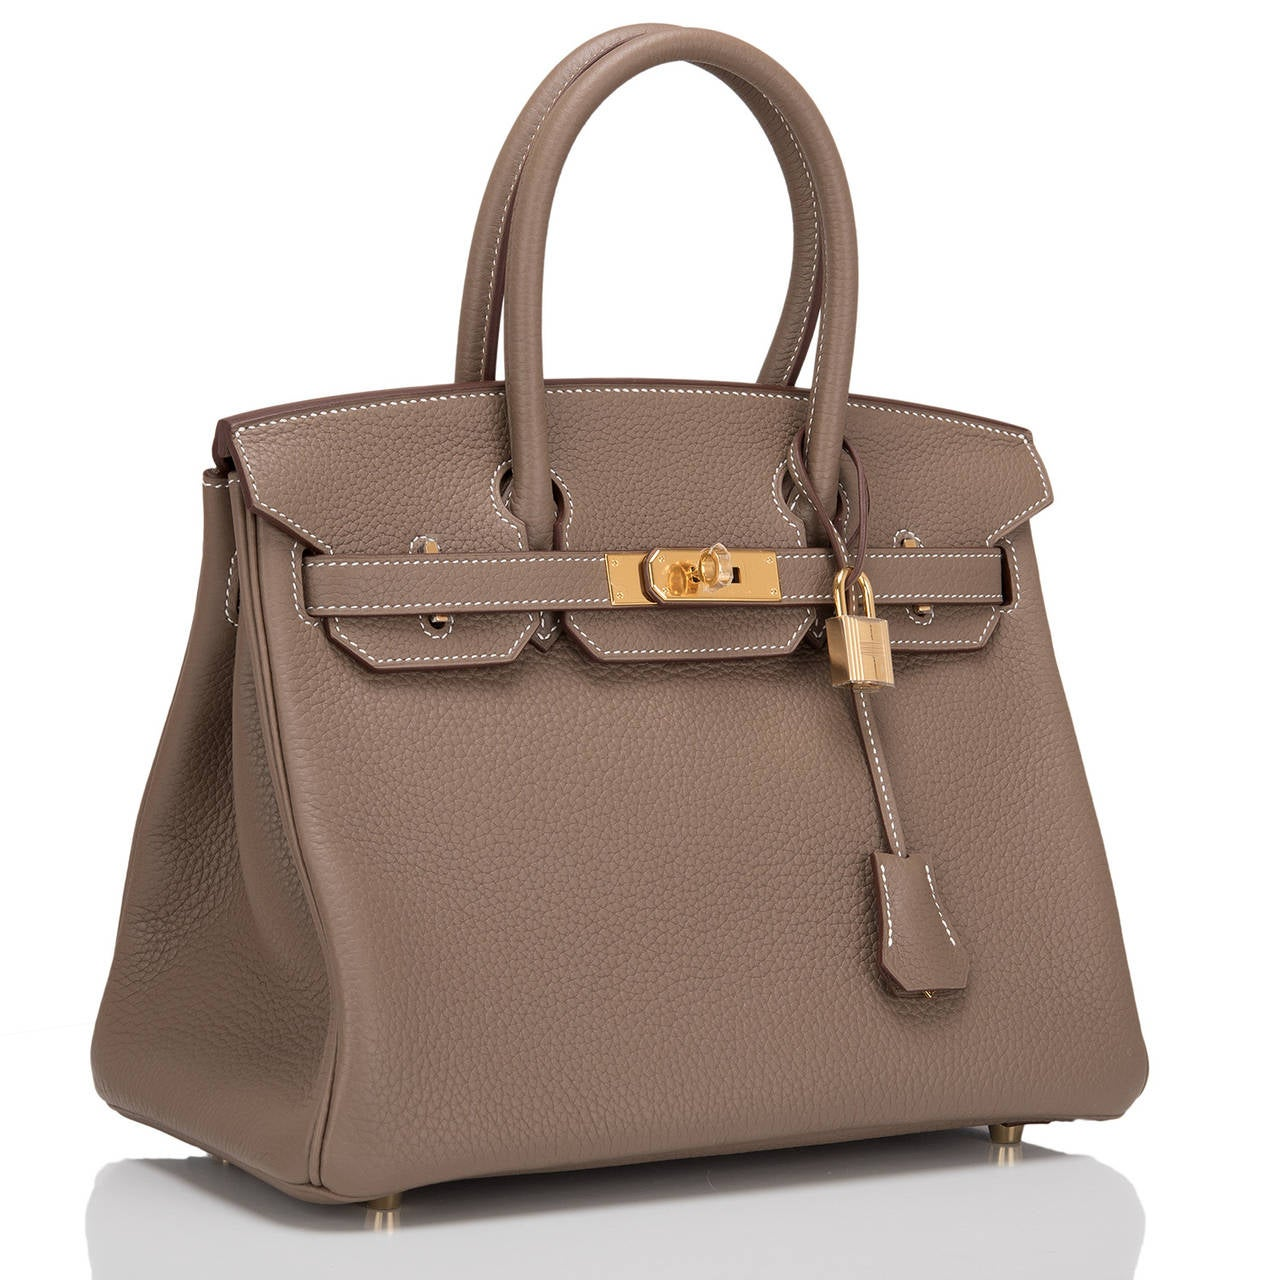 different styles of hermes bags - Hermes Etoupe Clemence Birkin 30cm Gold Hardware at 1stdibs